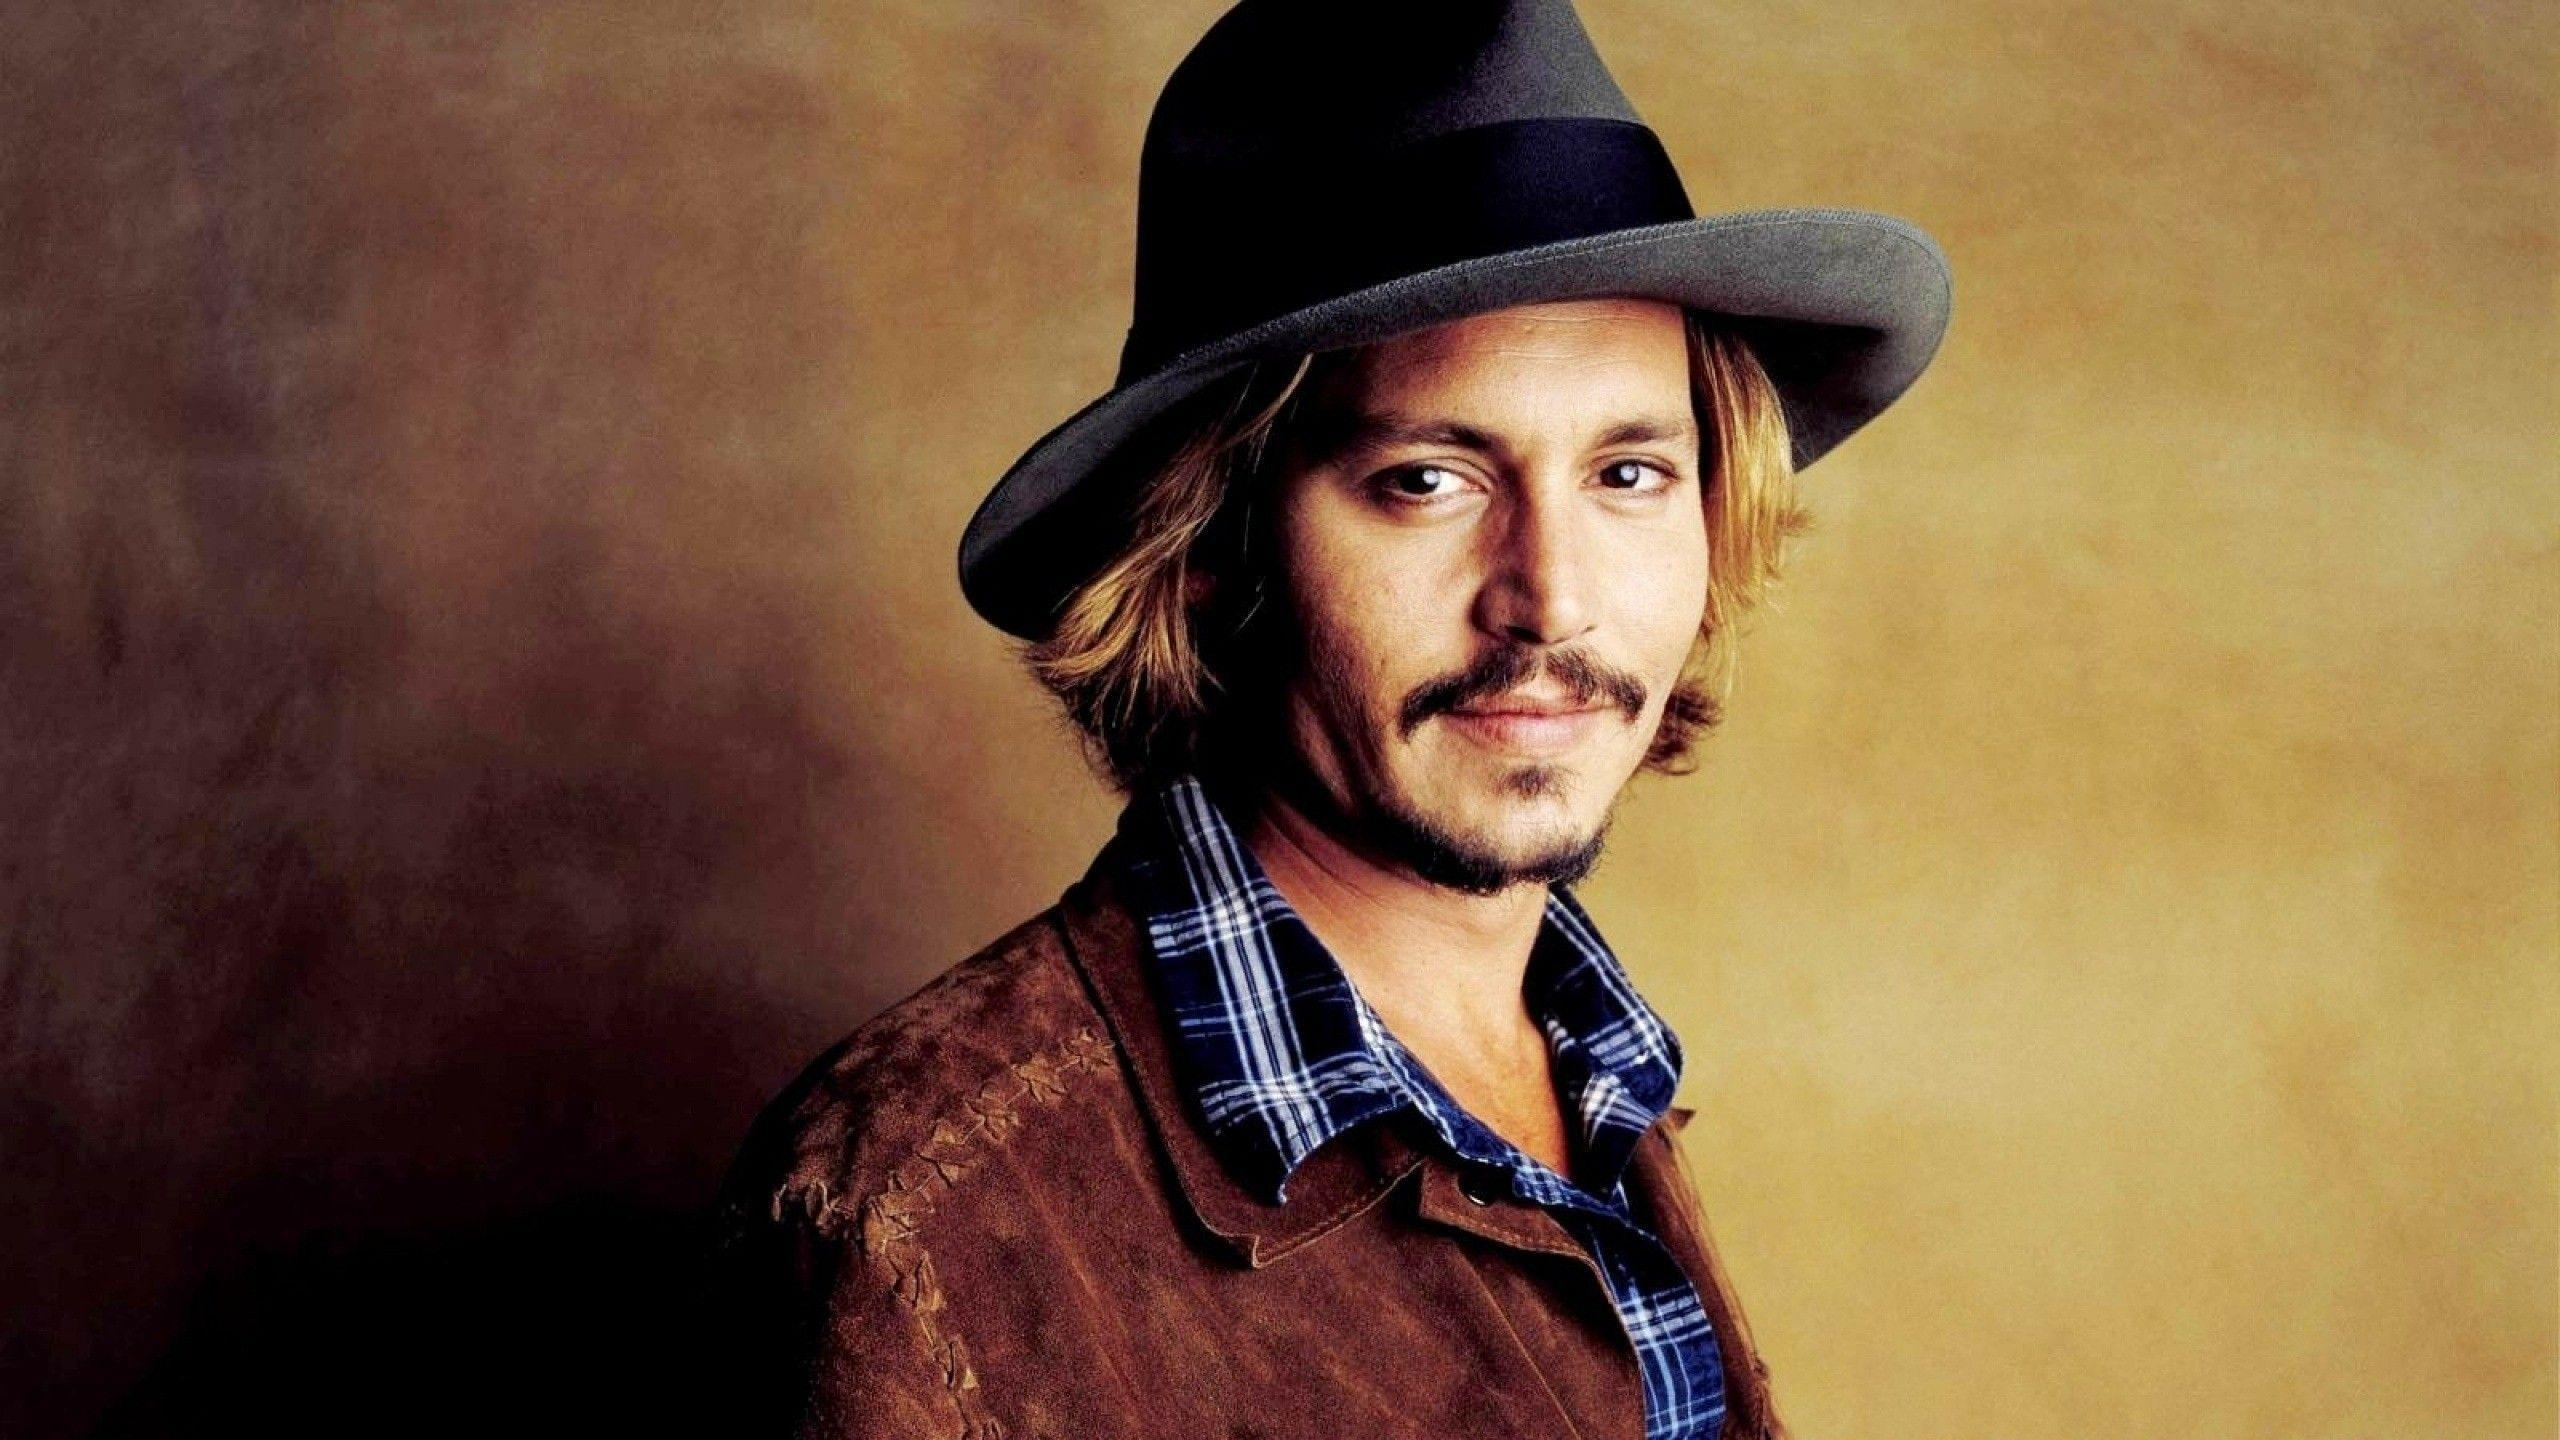 johnny depp hd wallpapers http://www.4gwallpapers.com/wp-content ...